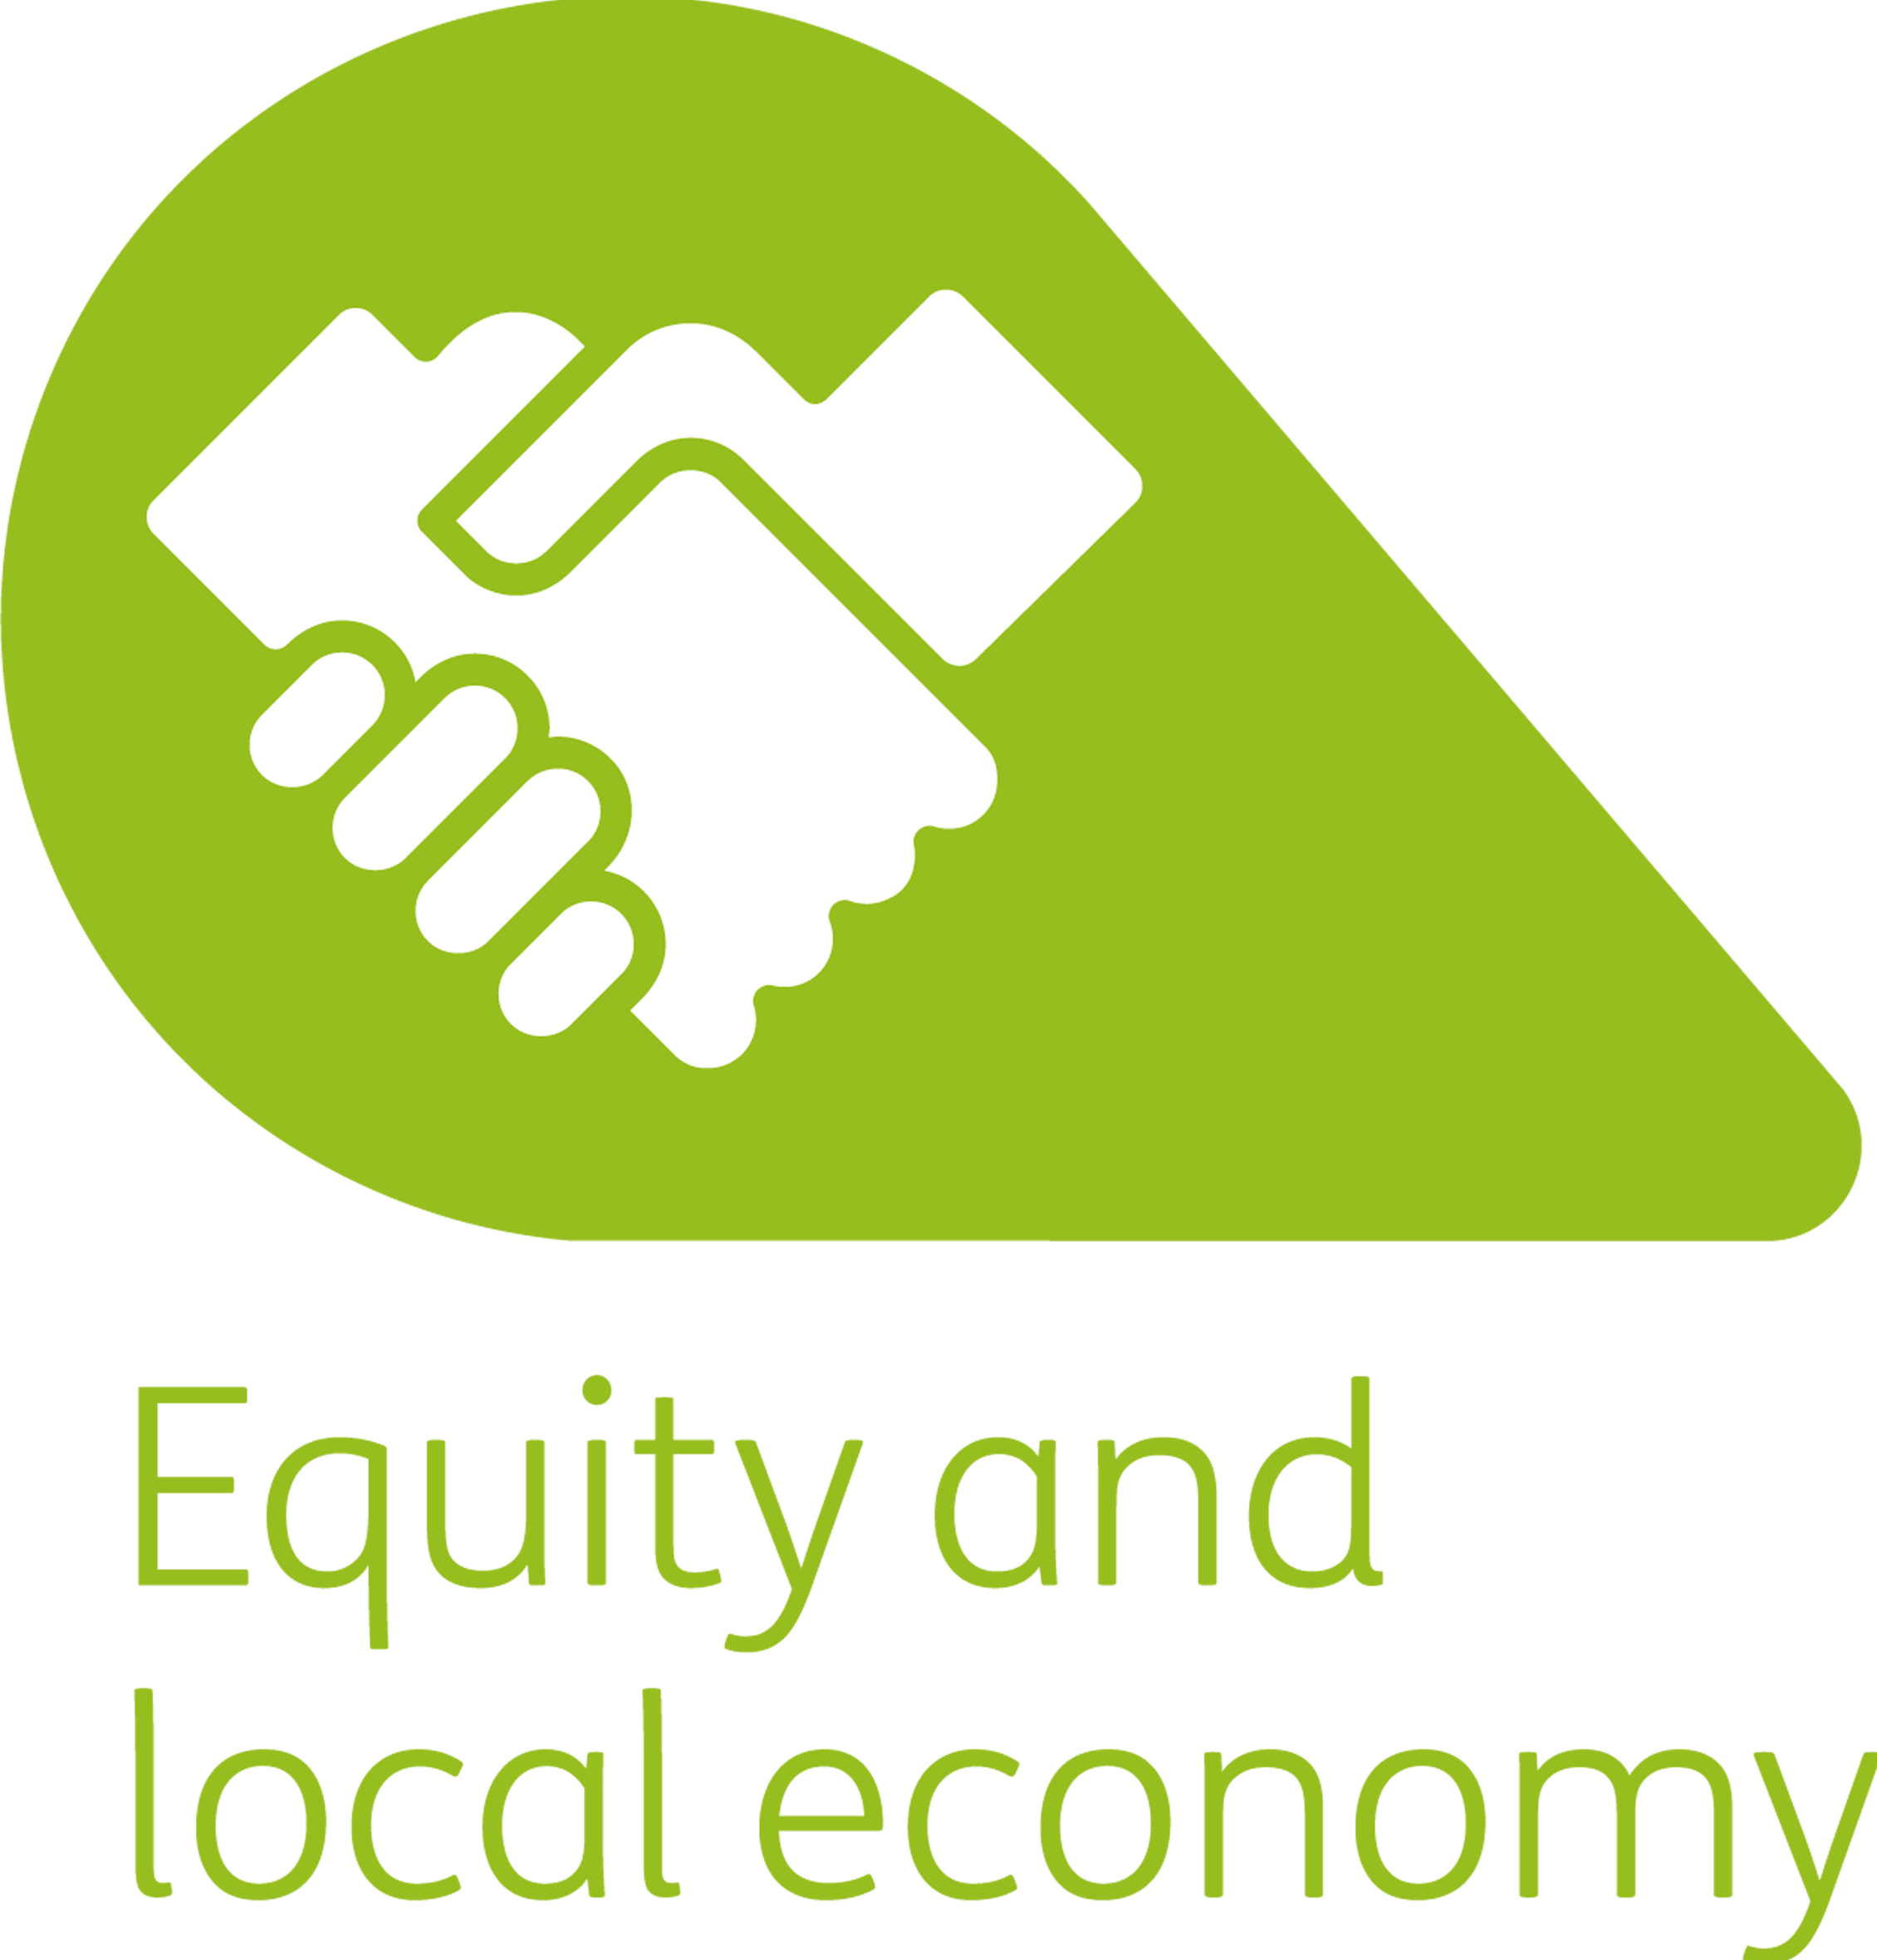 One Planet Living Equity & Local economy